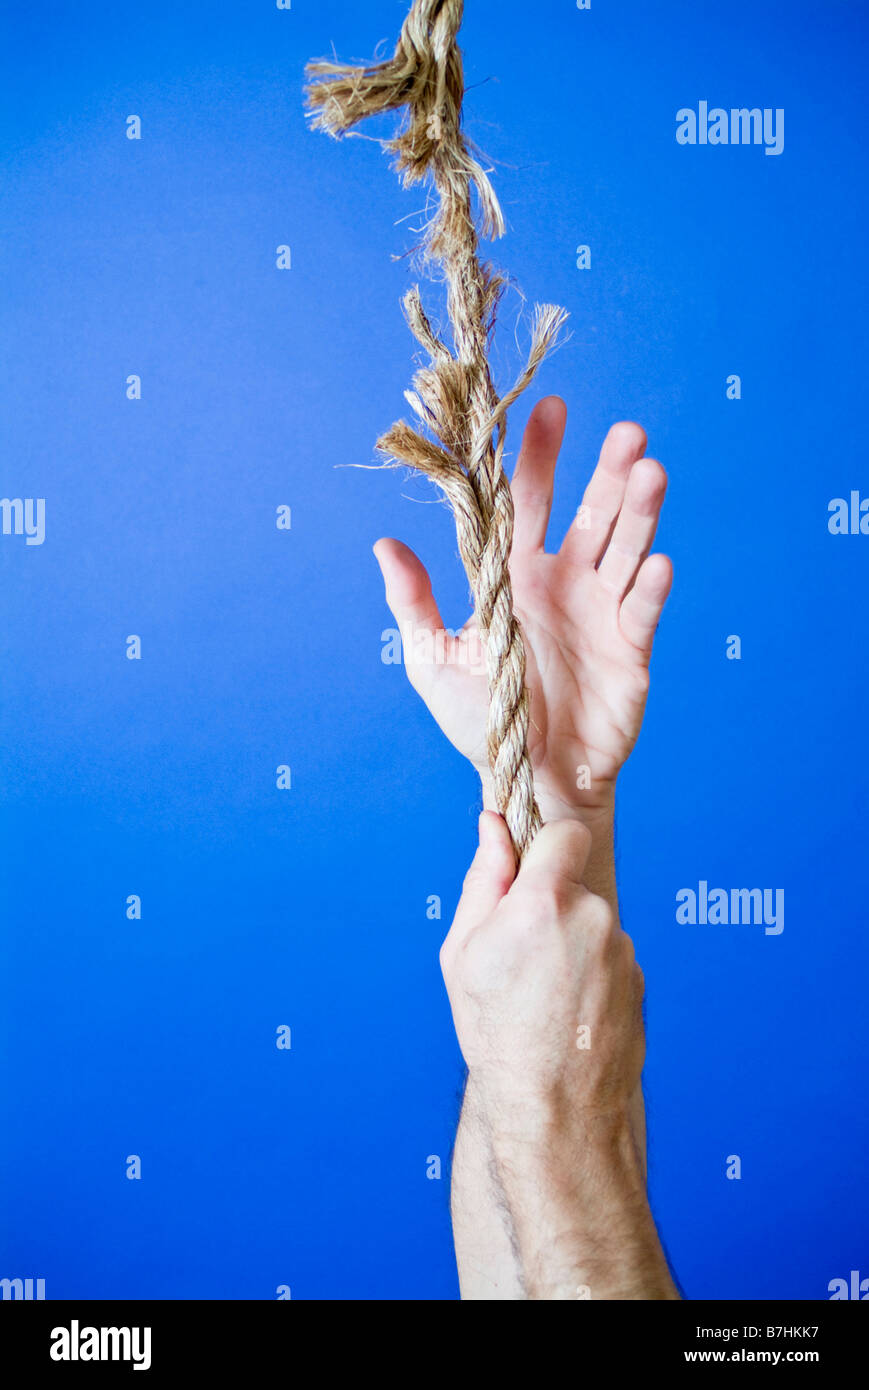 A man s hands grasping or climbing up a frayed rope portraying a very precarious situation - Stock Image